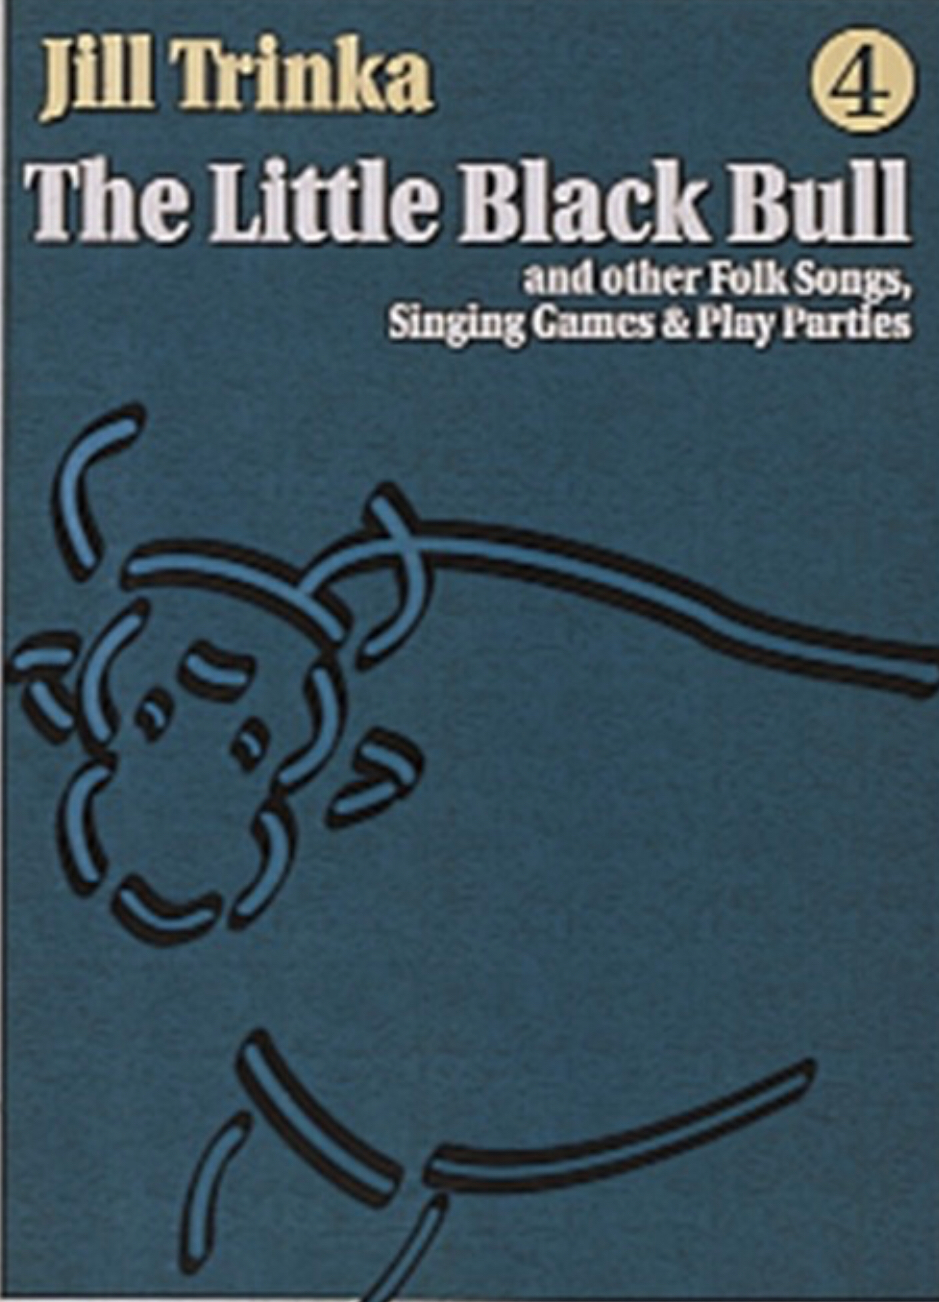 The Little Black Bull (Book And CD) by Jill Trinka